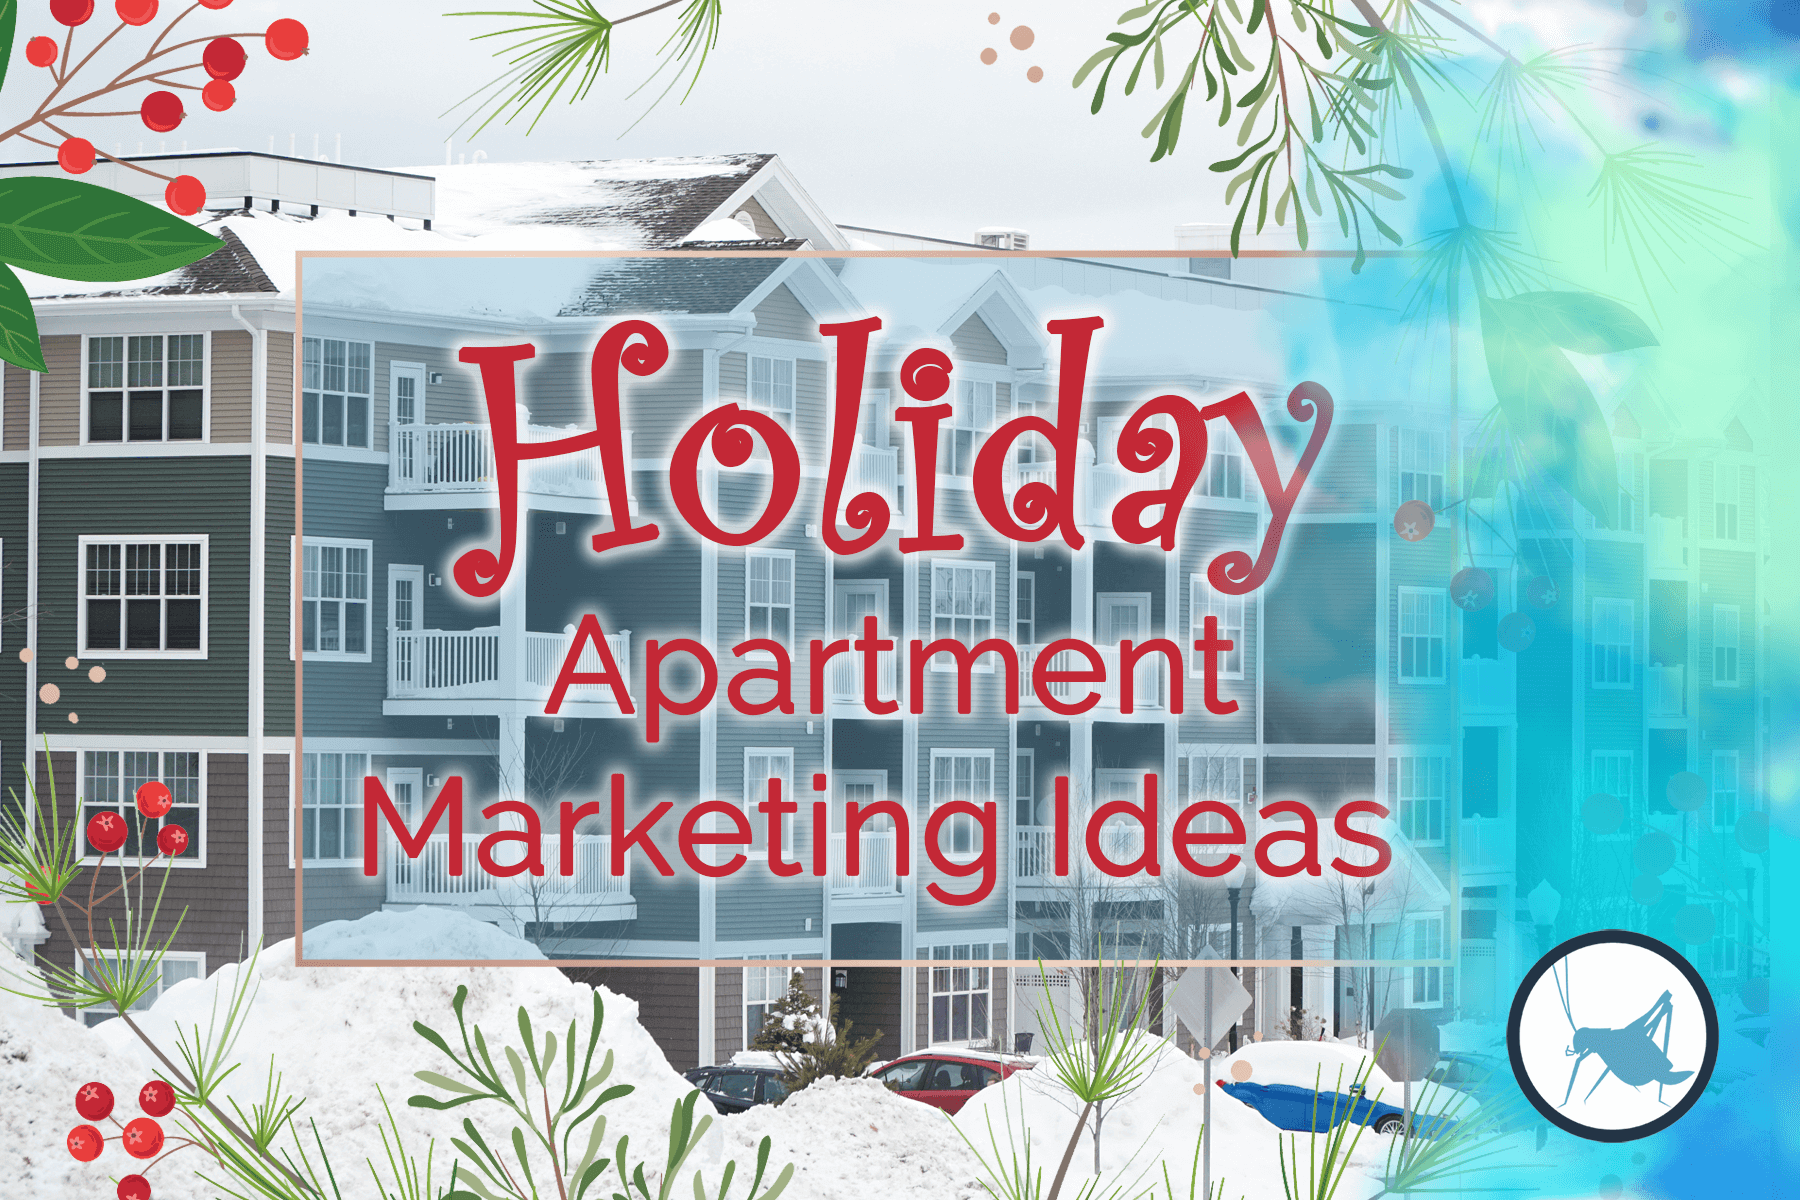 Holiday Apartment Marketing Ideas